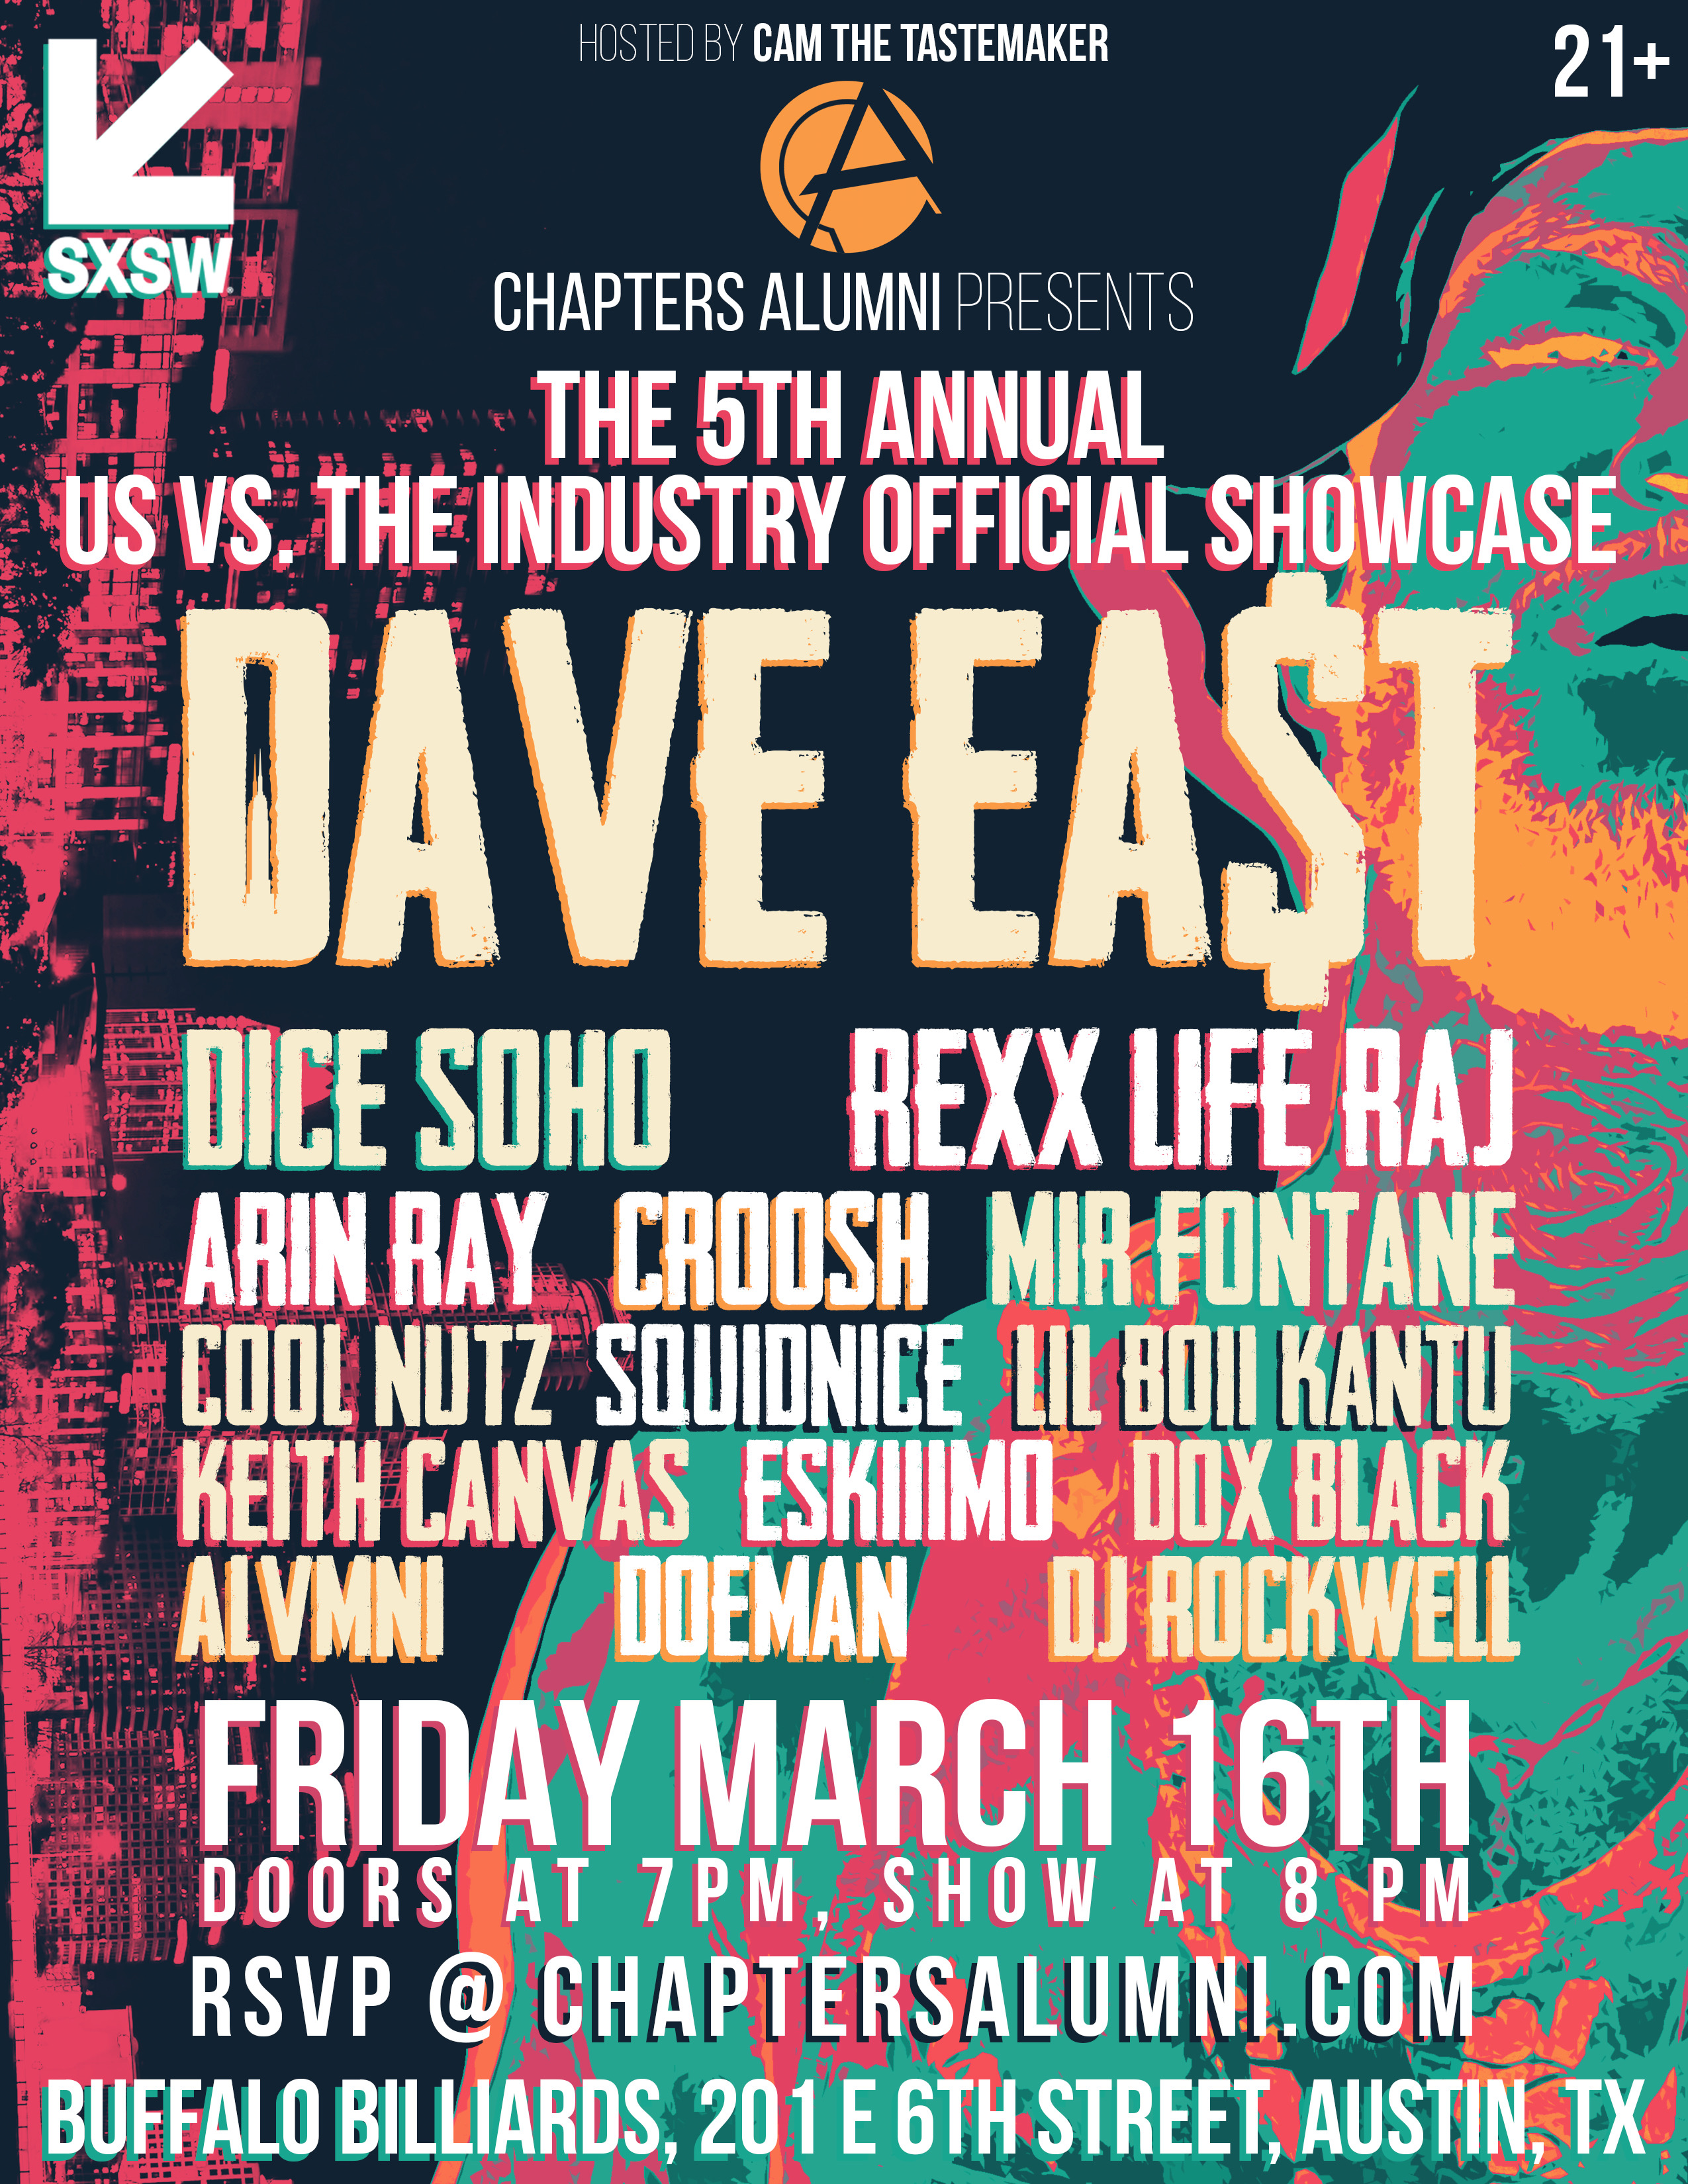 Chapters Alumni Announce Their 5th Annual 'Us vs The Industry' SXSW Showcase feat. Dave East, Dice SoHo, Squidnice & More!